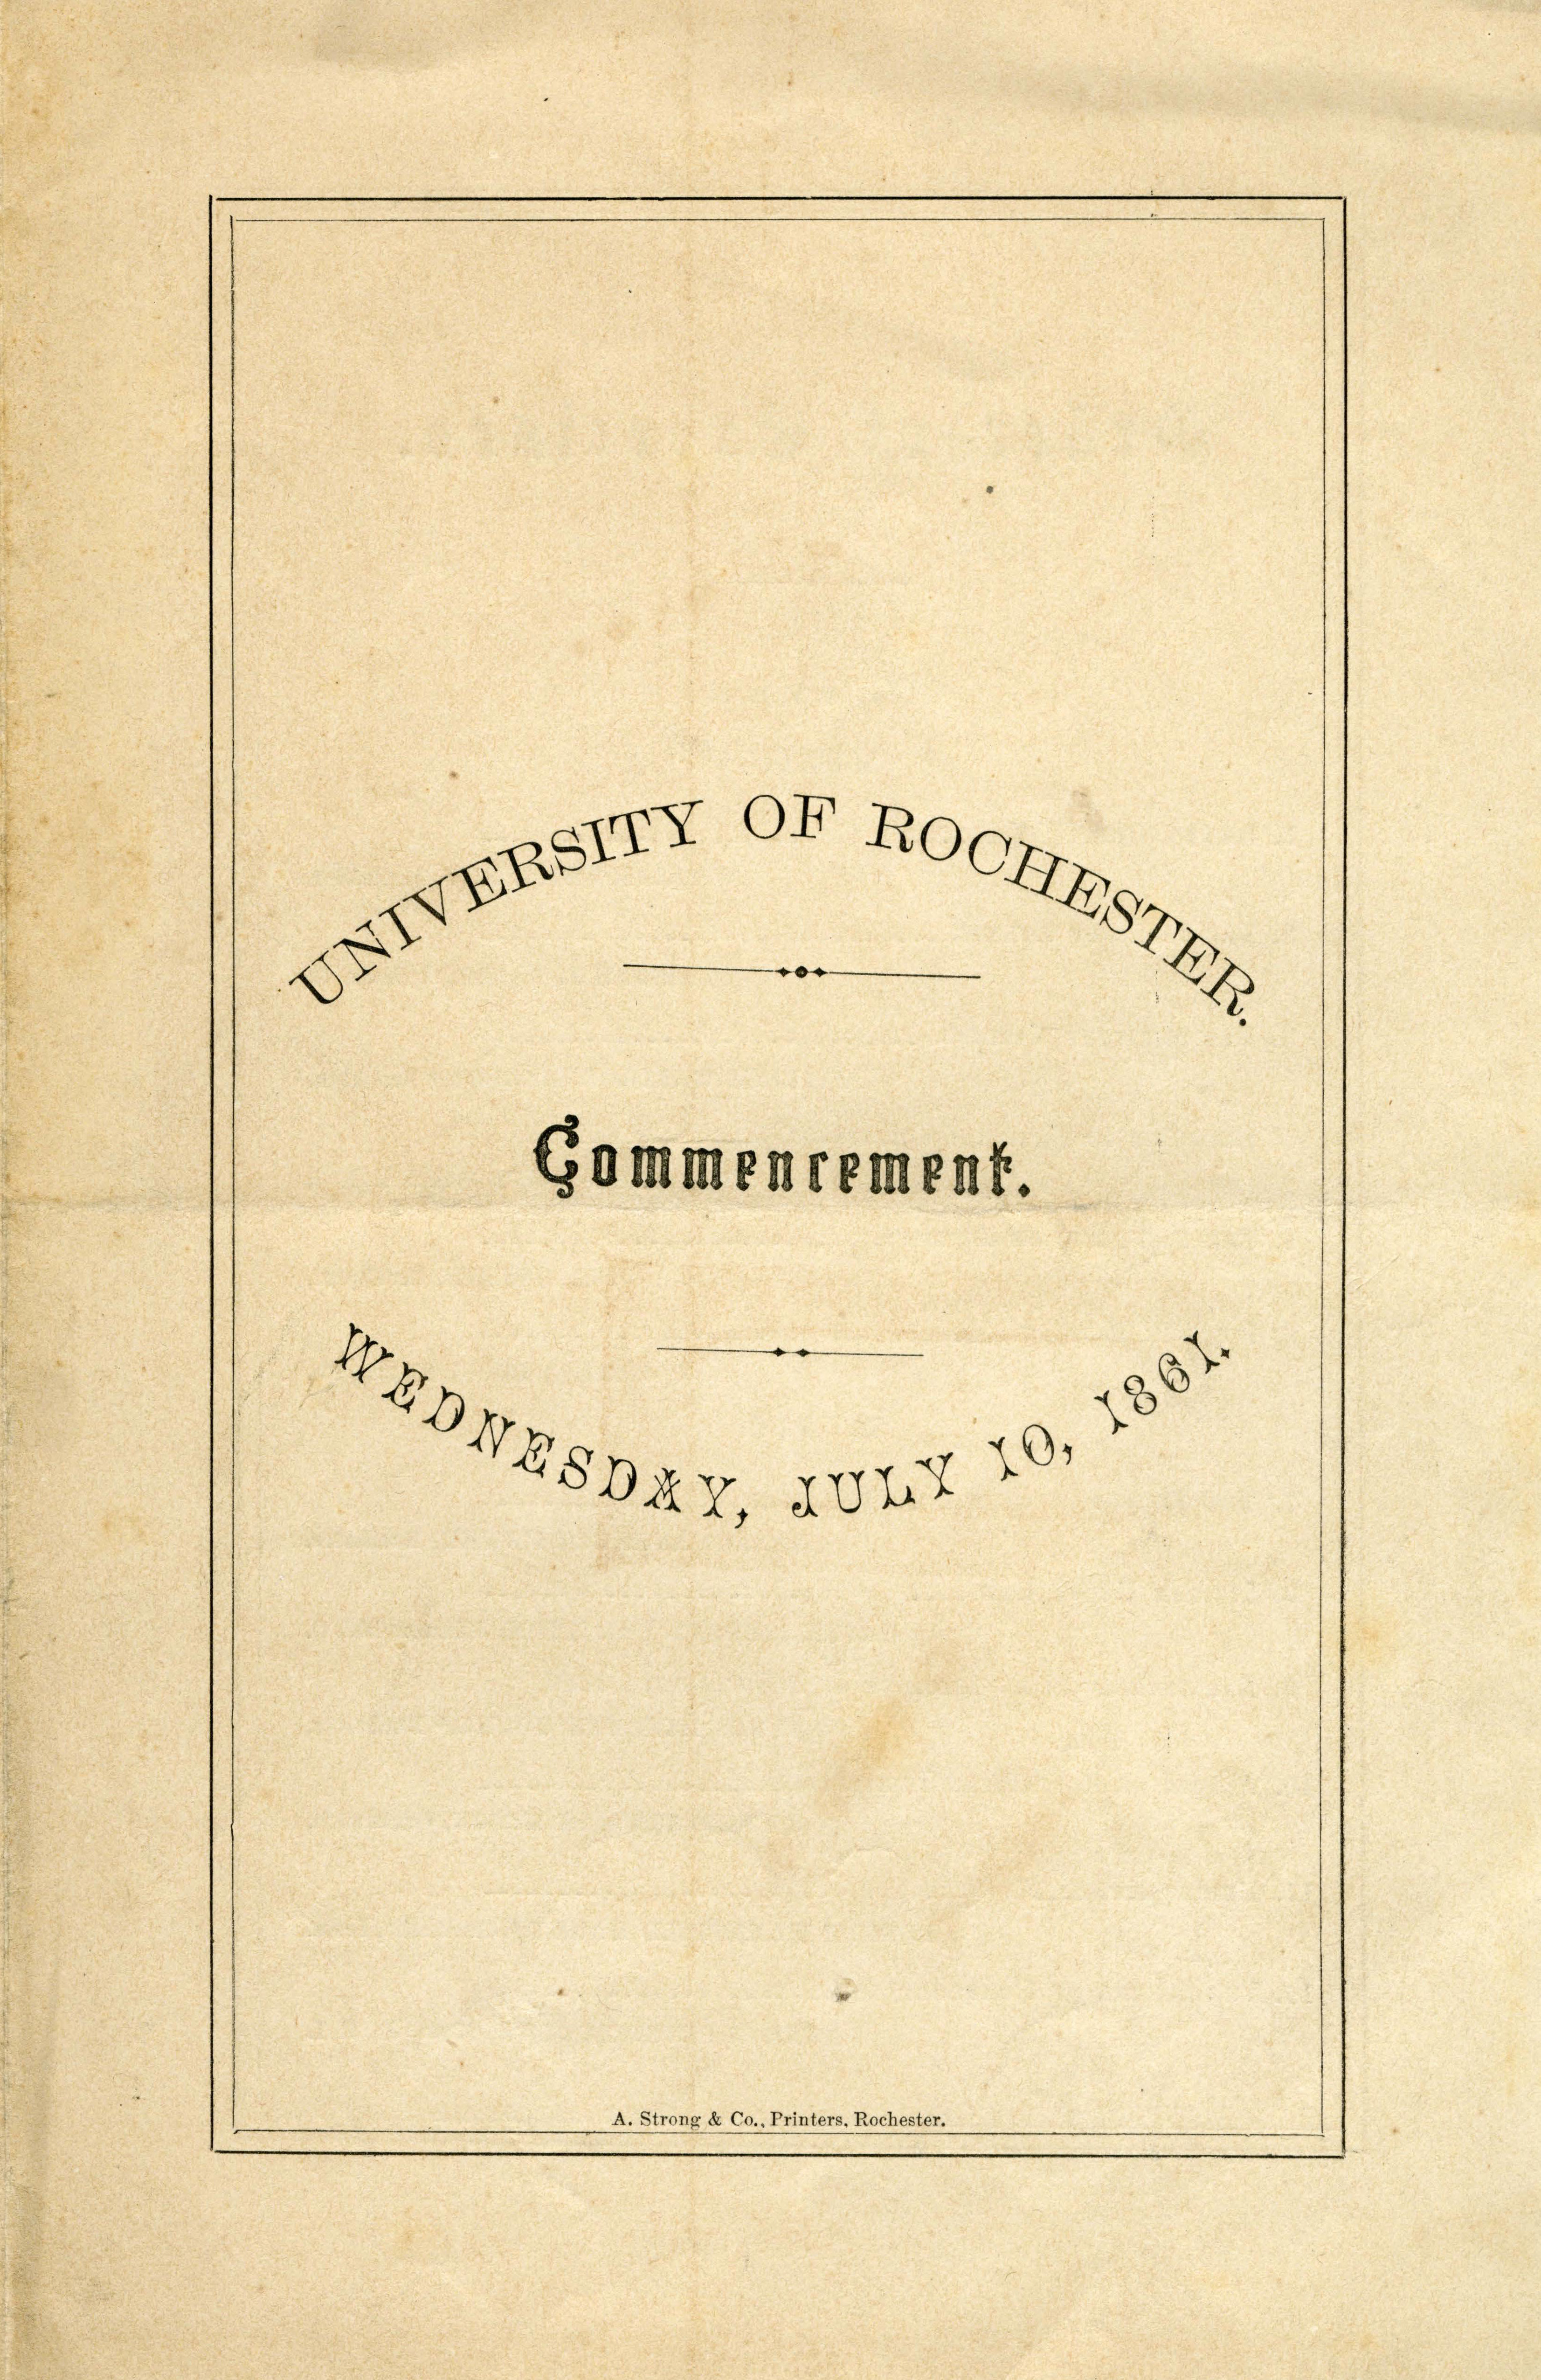 Commencement program (July 10, 1861)